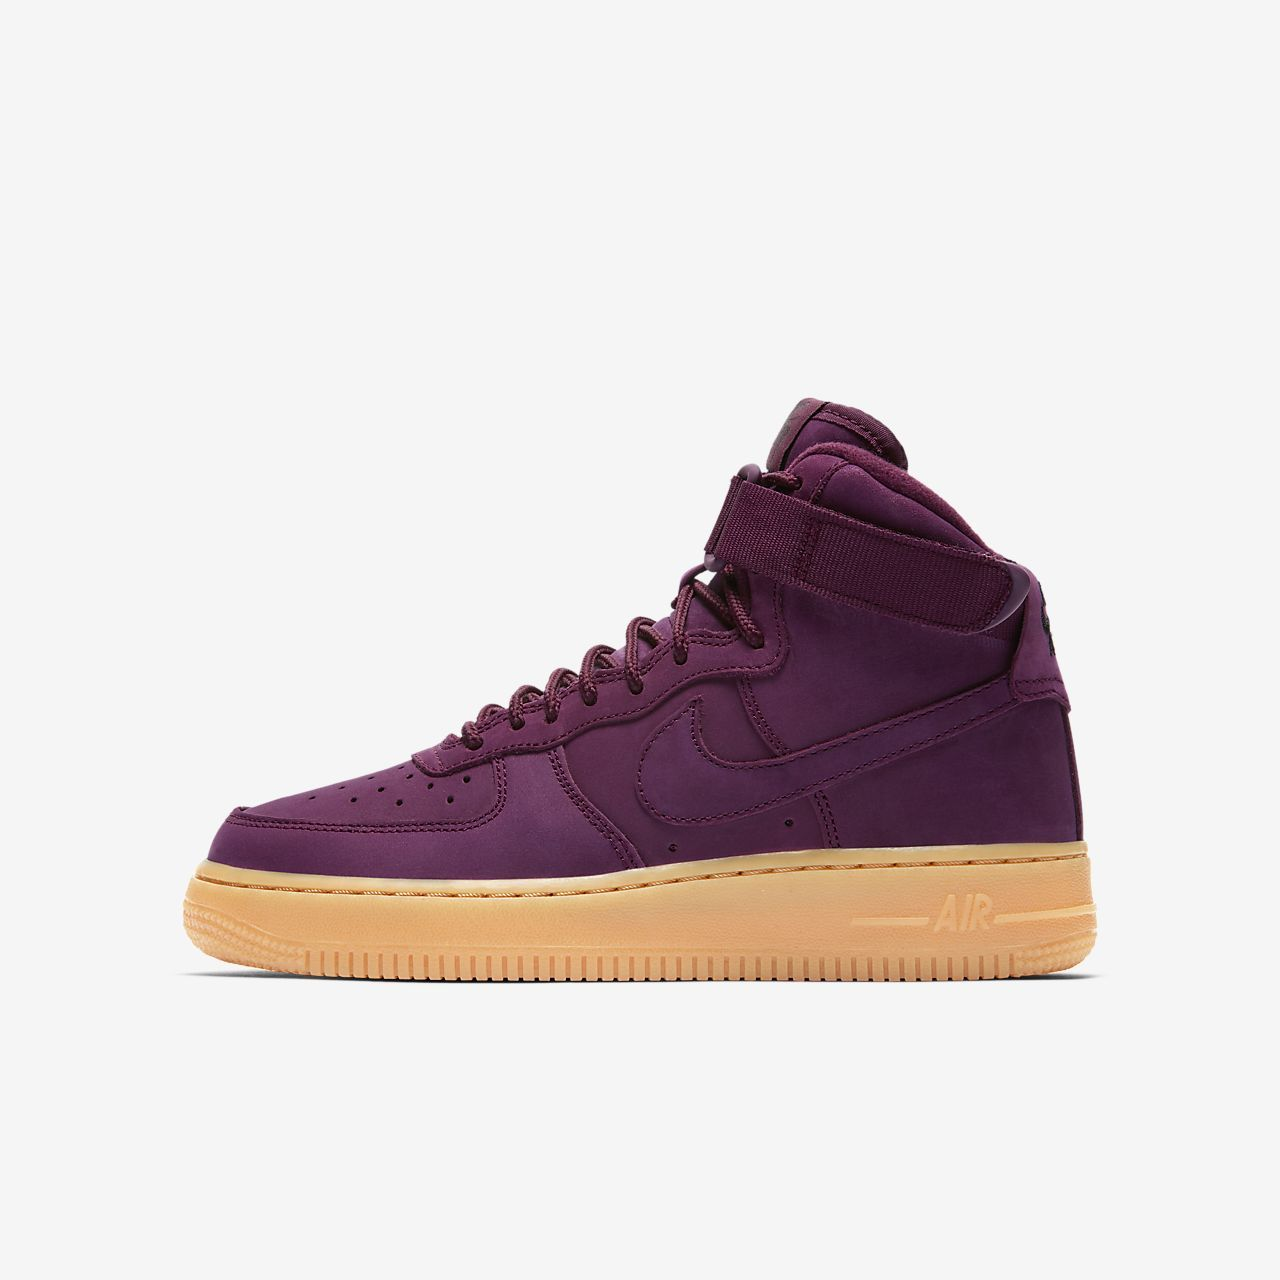 Nike Air Force 1 High WB Older Kids' Shoe | Velvet shoes